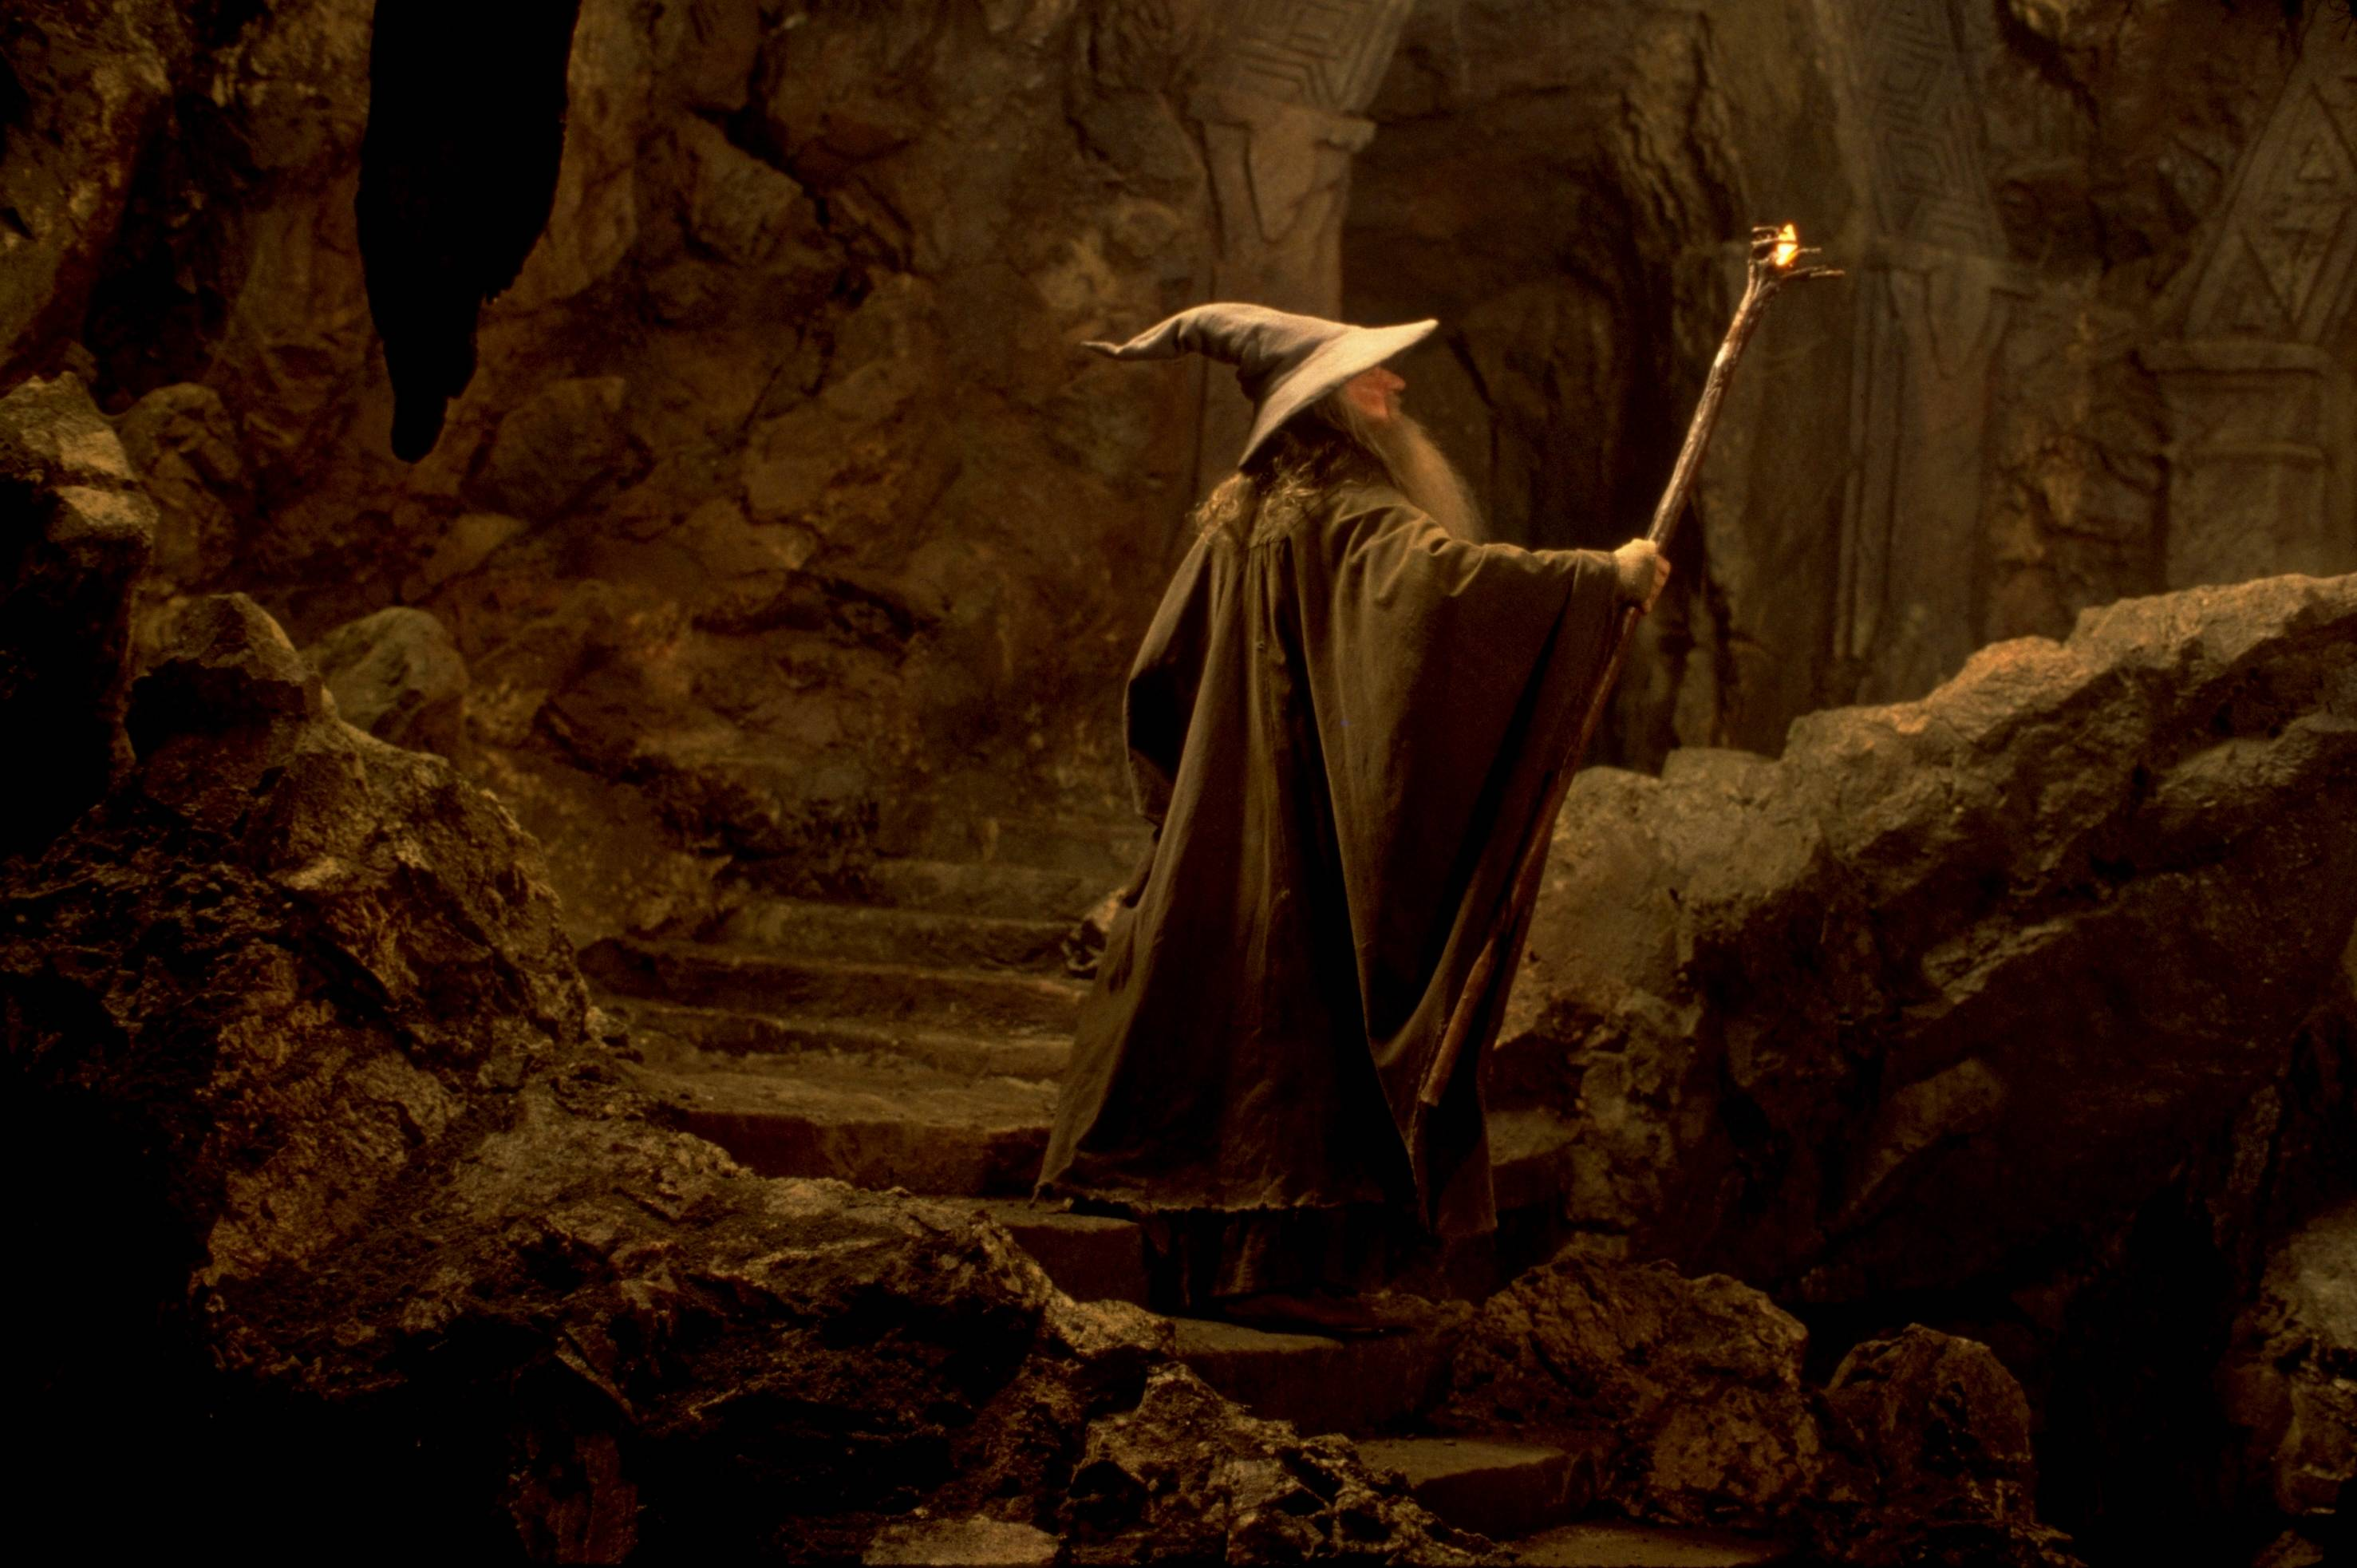 Lord Of The Rings Wallpapers HD 2954x1965